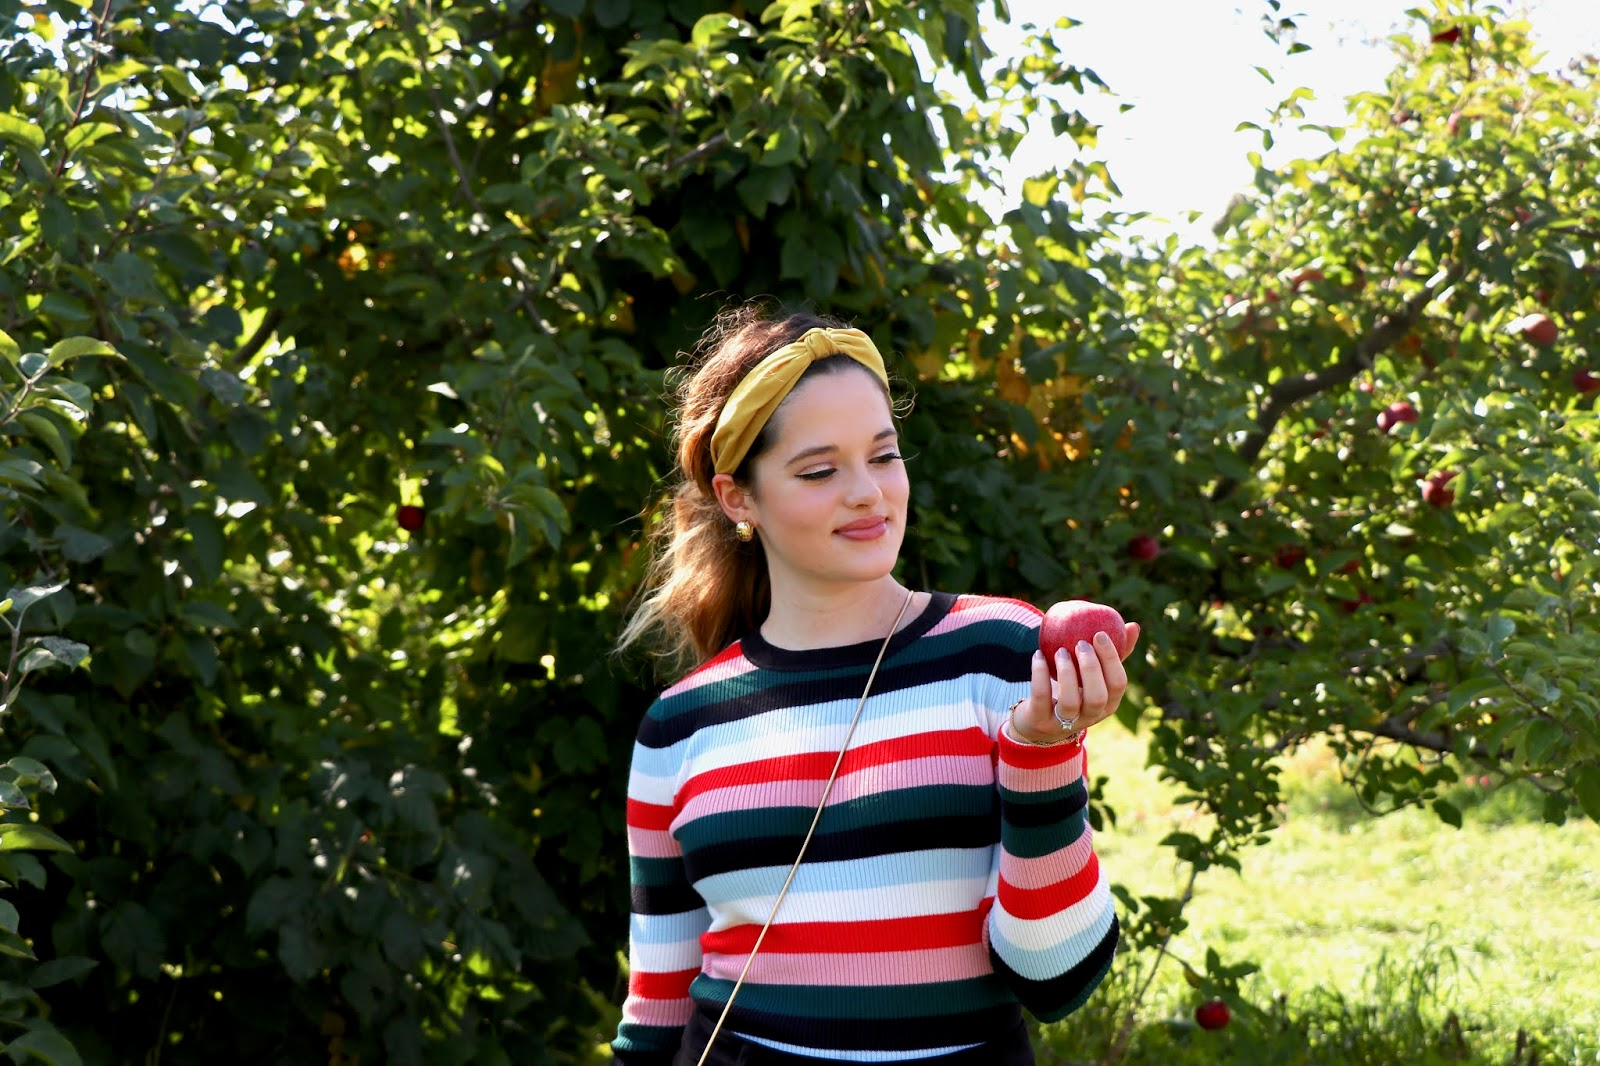 Nyc fashion blogger Kathleen Harper's fall apple picking outfit.